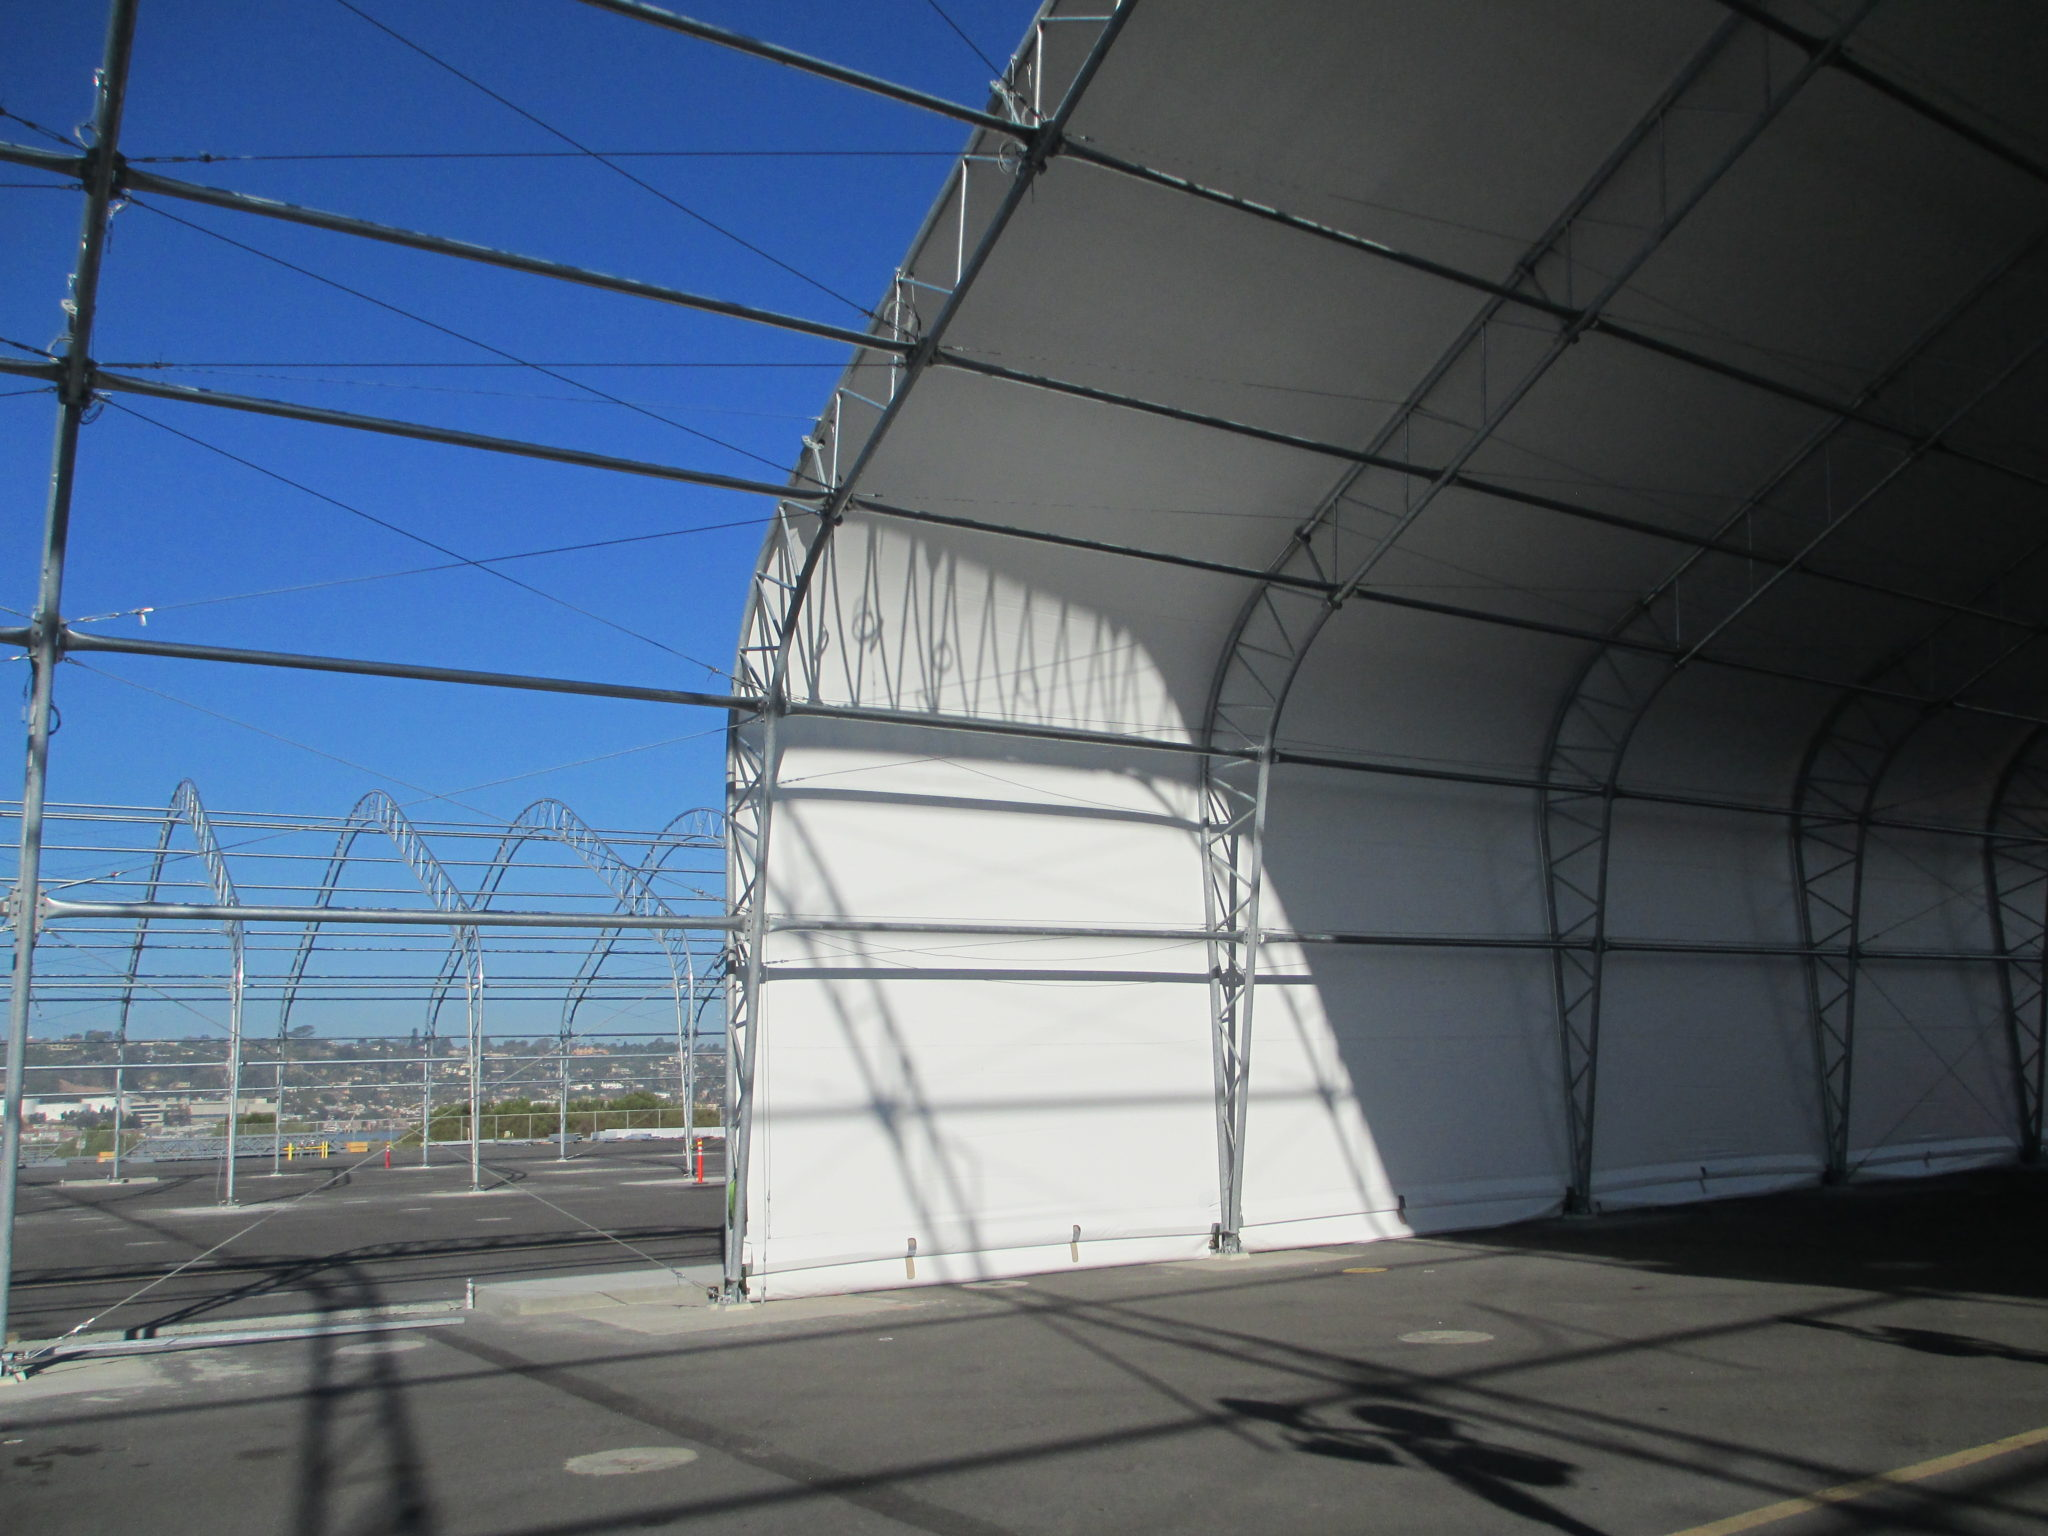 Aircraft shelter covered in white fabric